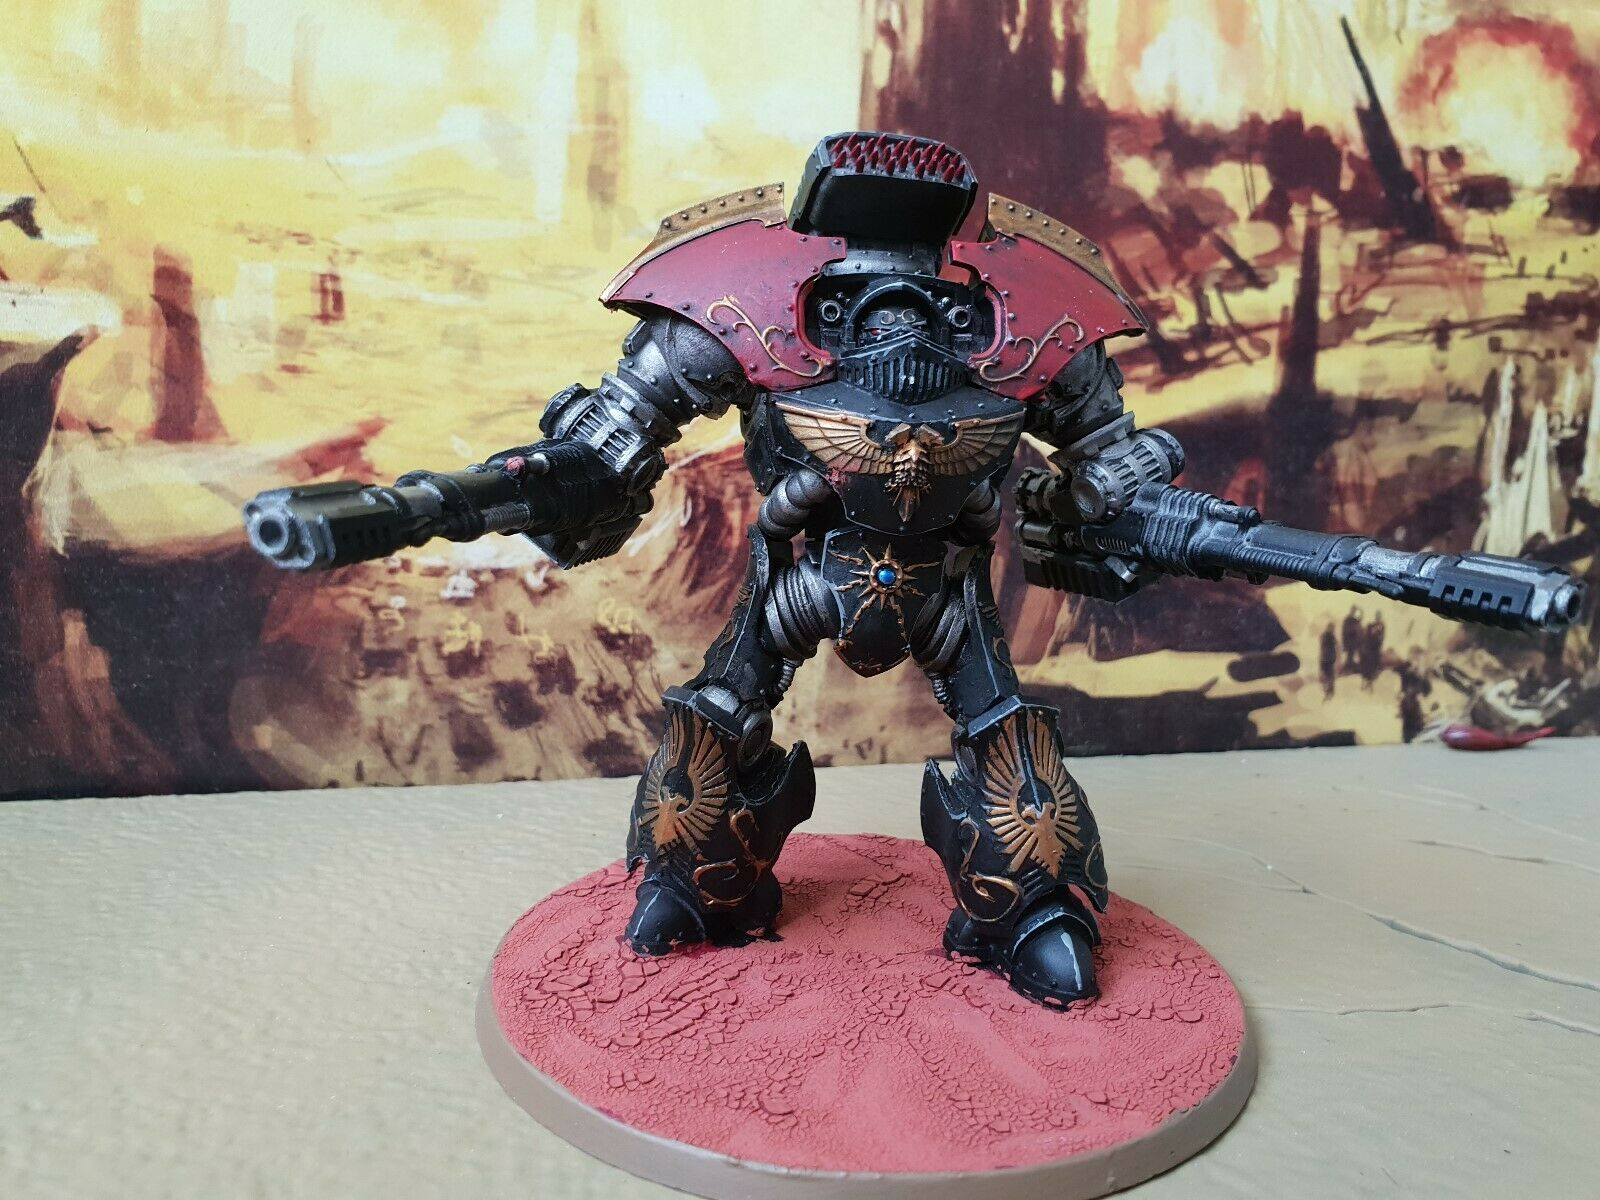 Warhammer forgeworld shadow keepers Custodes Telemon dreadnought + 2 weapon arms